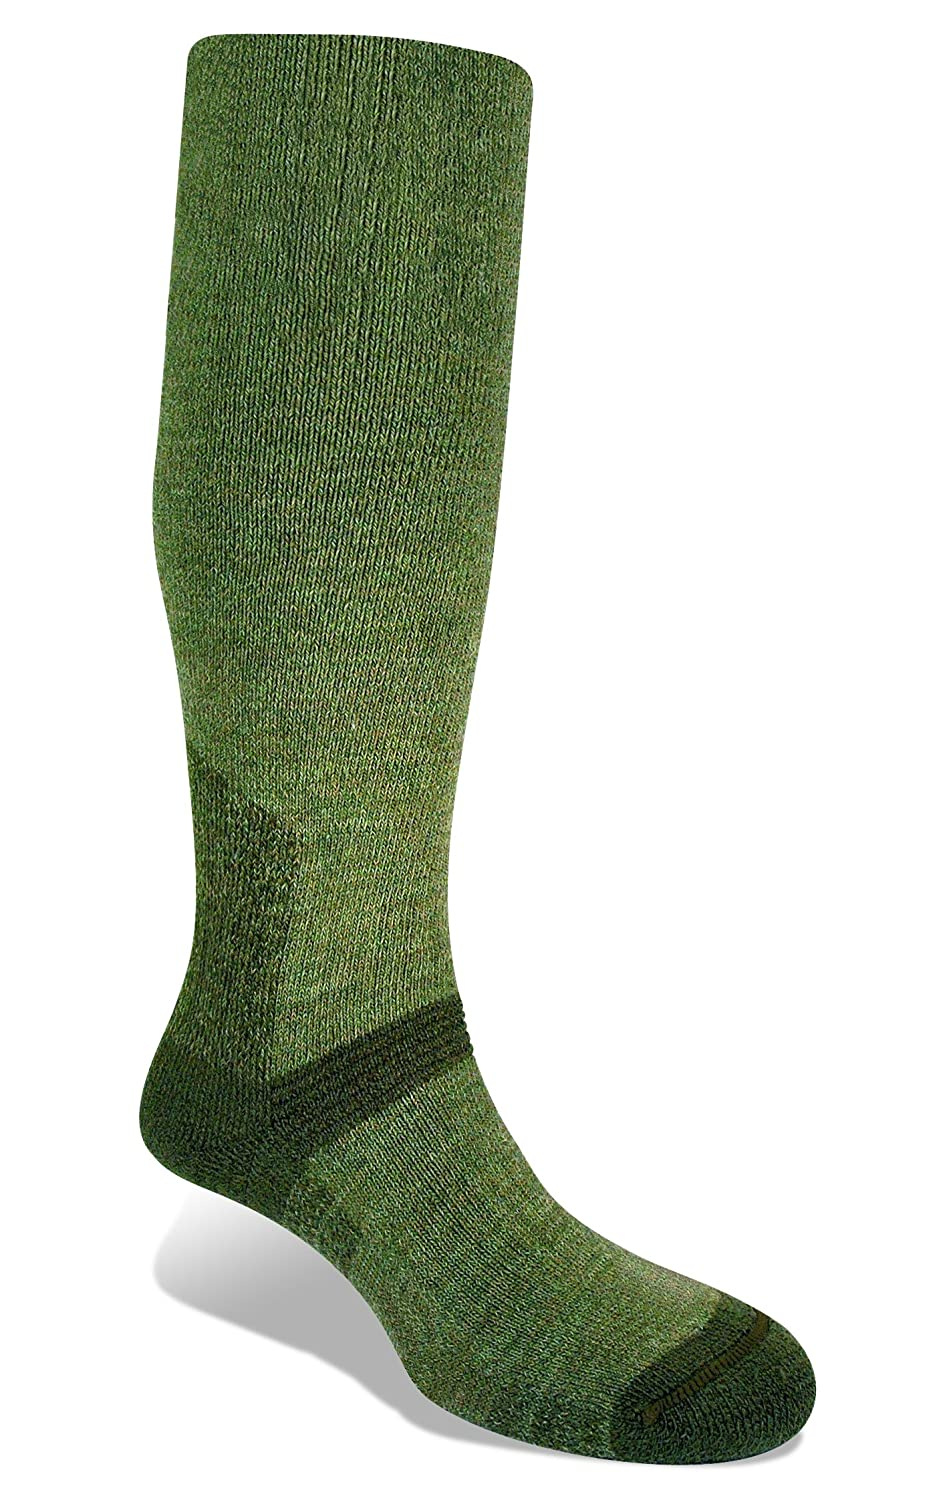 Bridgedale Men's WoolFusion Summit Knee Socks